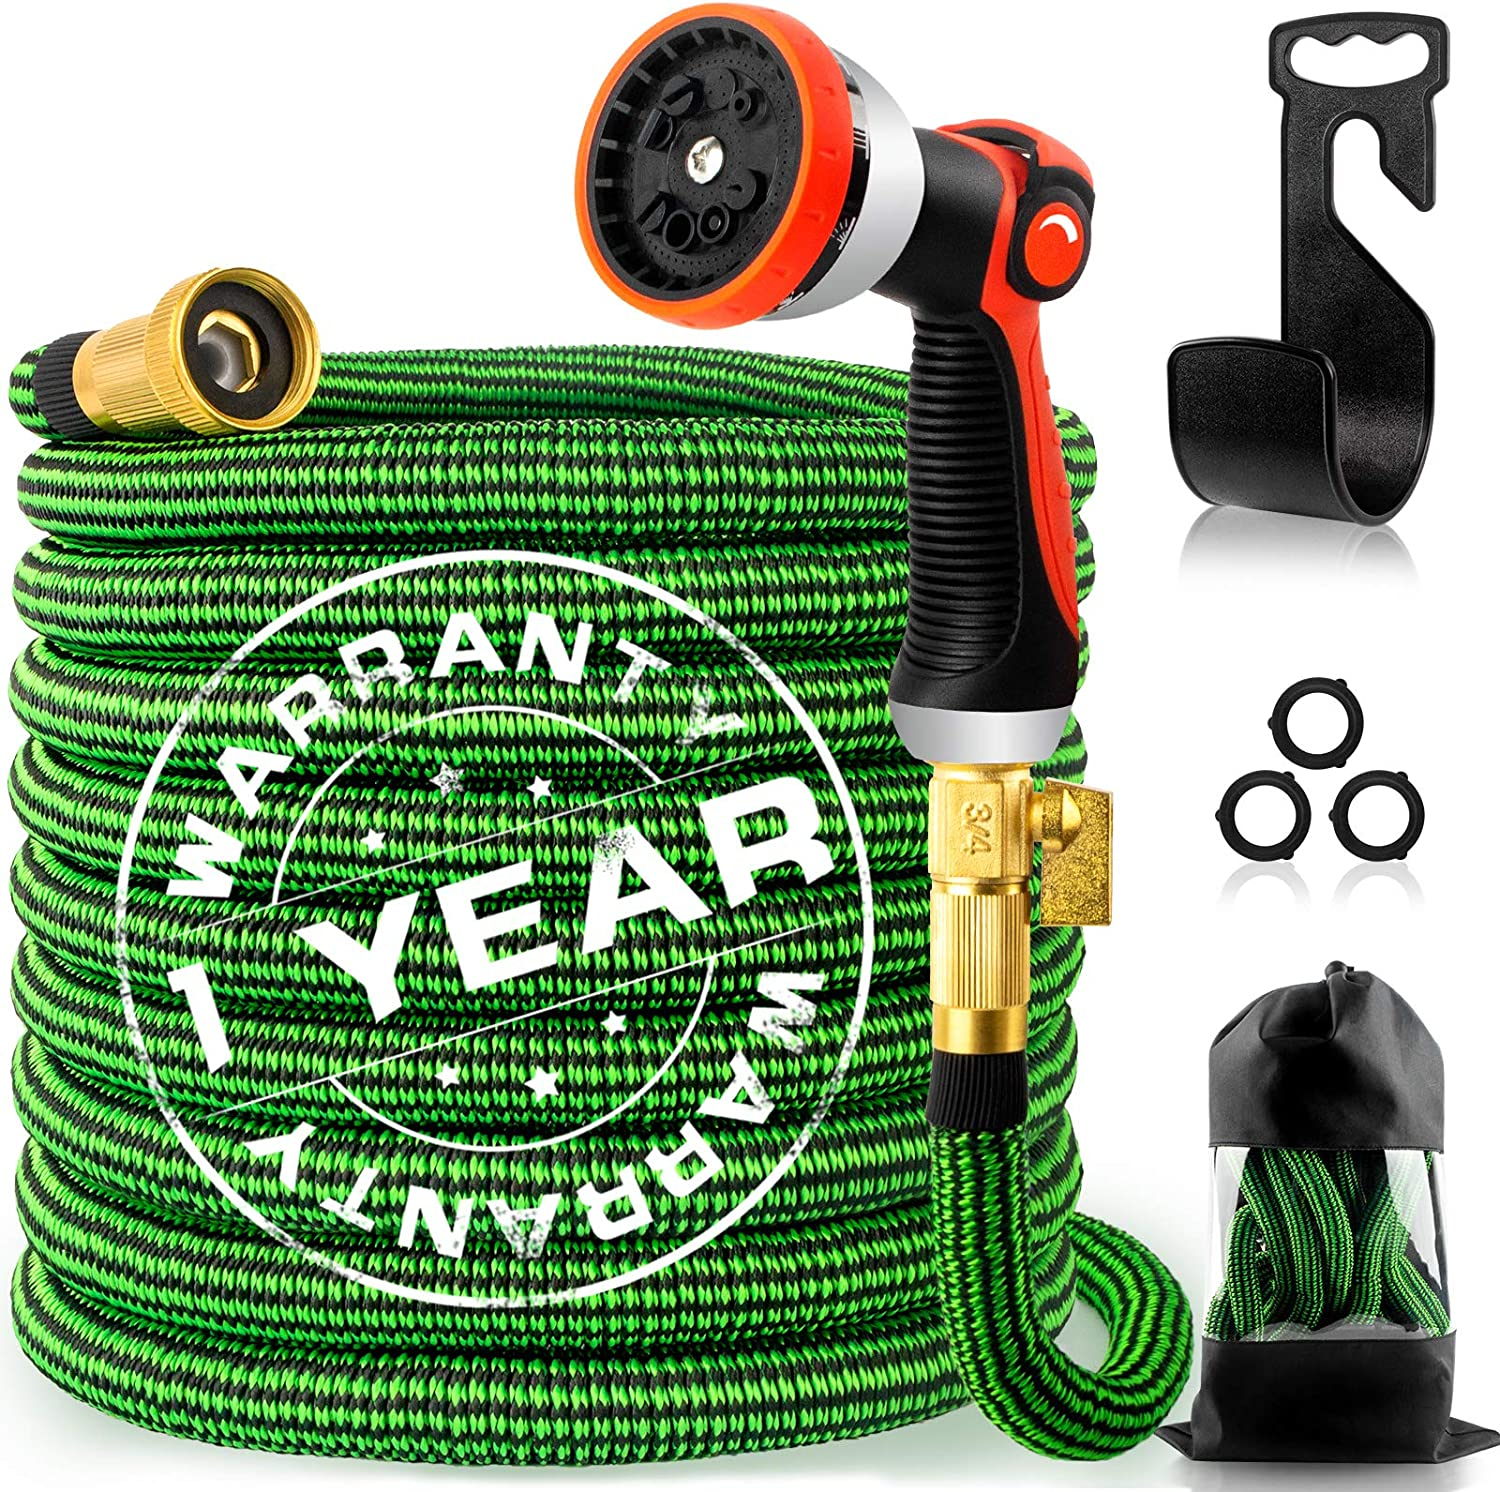 75ft Expandable Garden Hose, Flexible Water Hose with 10 Function Nozzle, 4-Layer Latex Core and 3/4